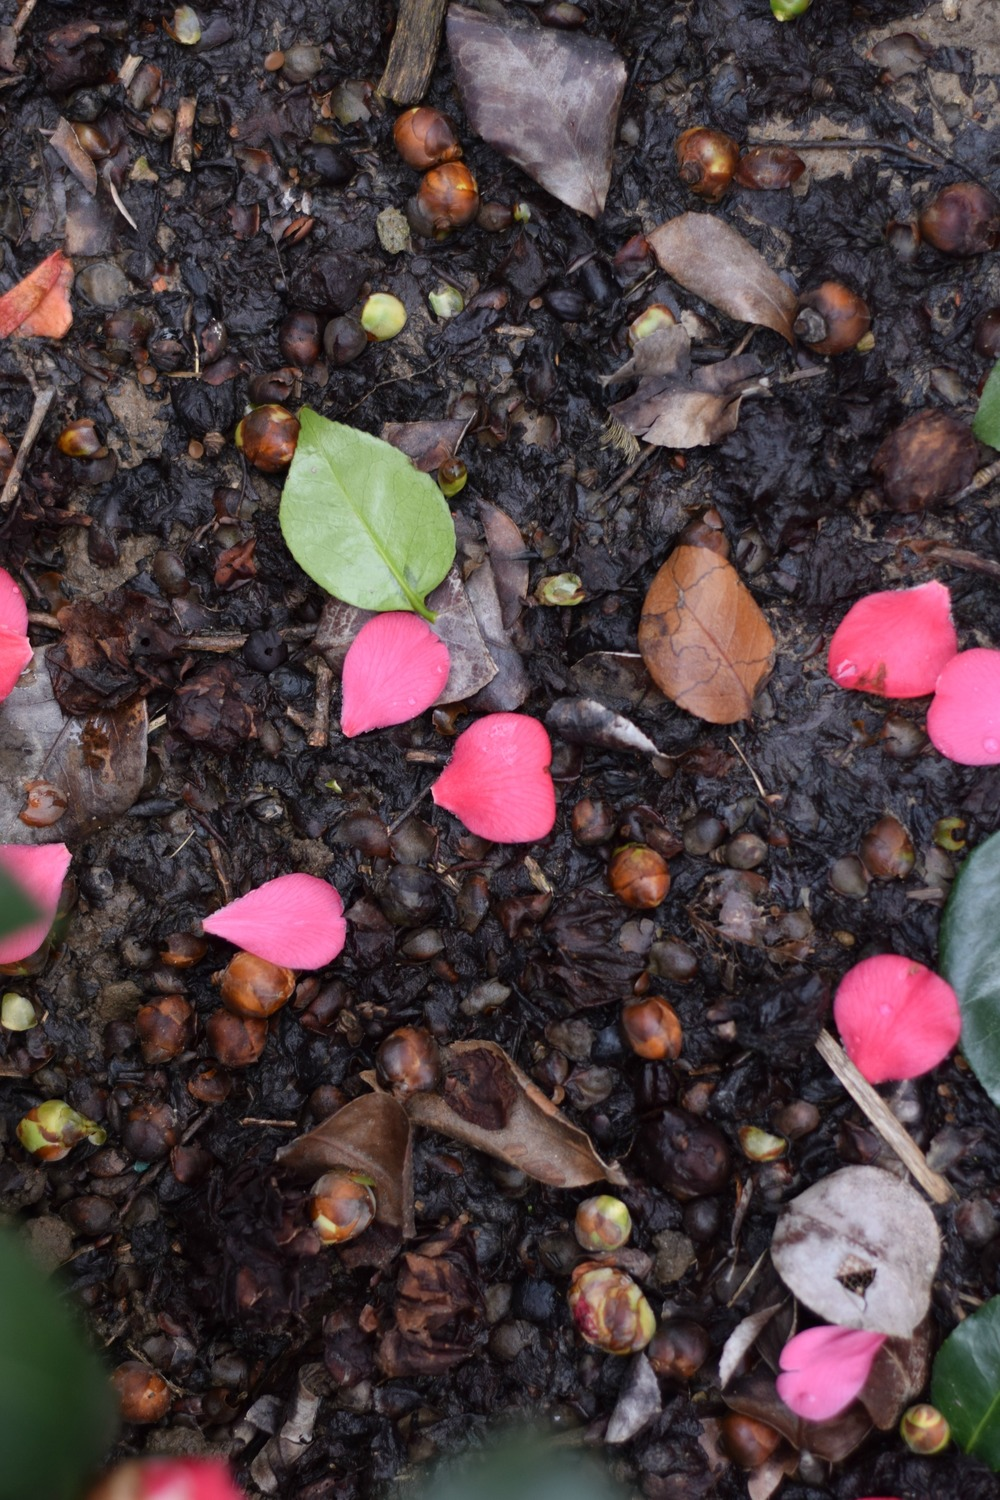 Some CAMELLIA PETALS, I love how they look bright and full of life on this muddy ground.